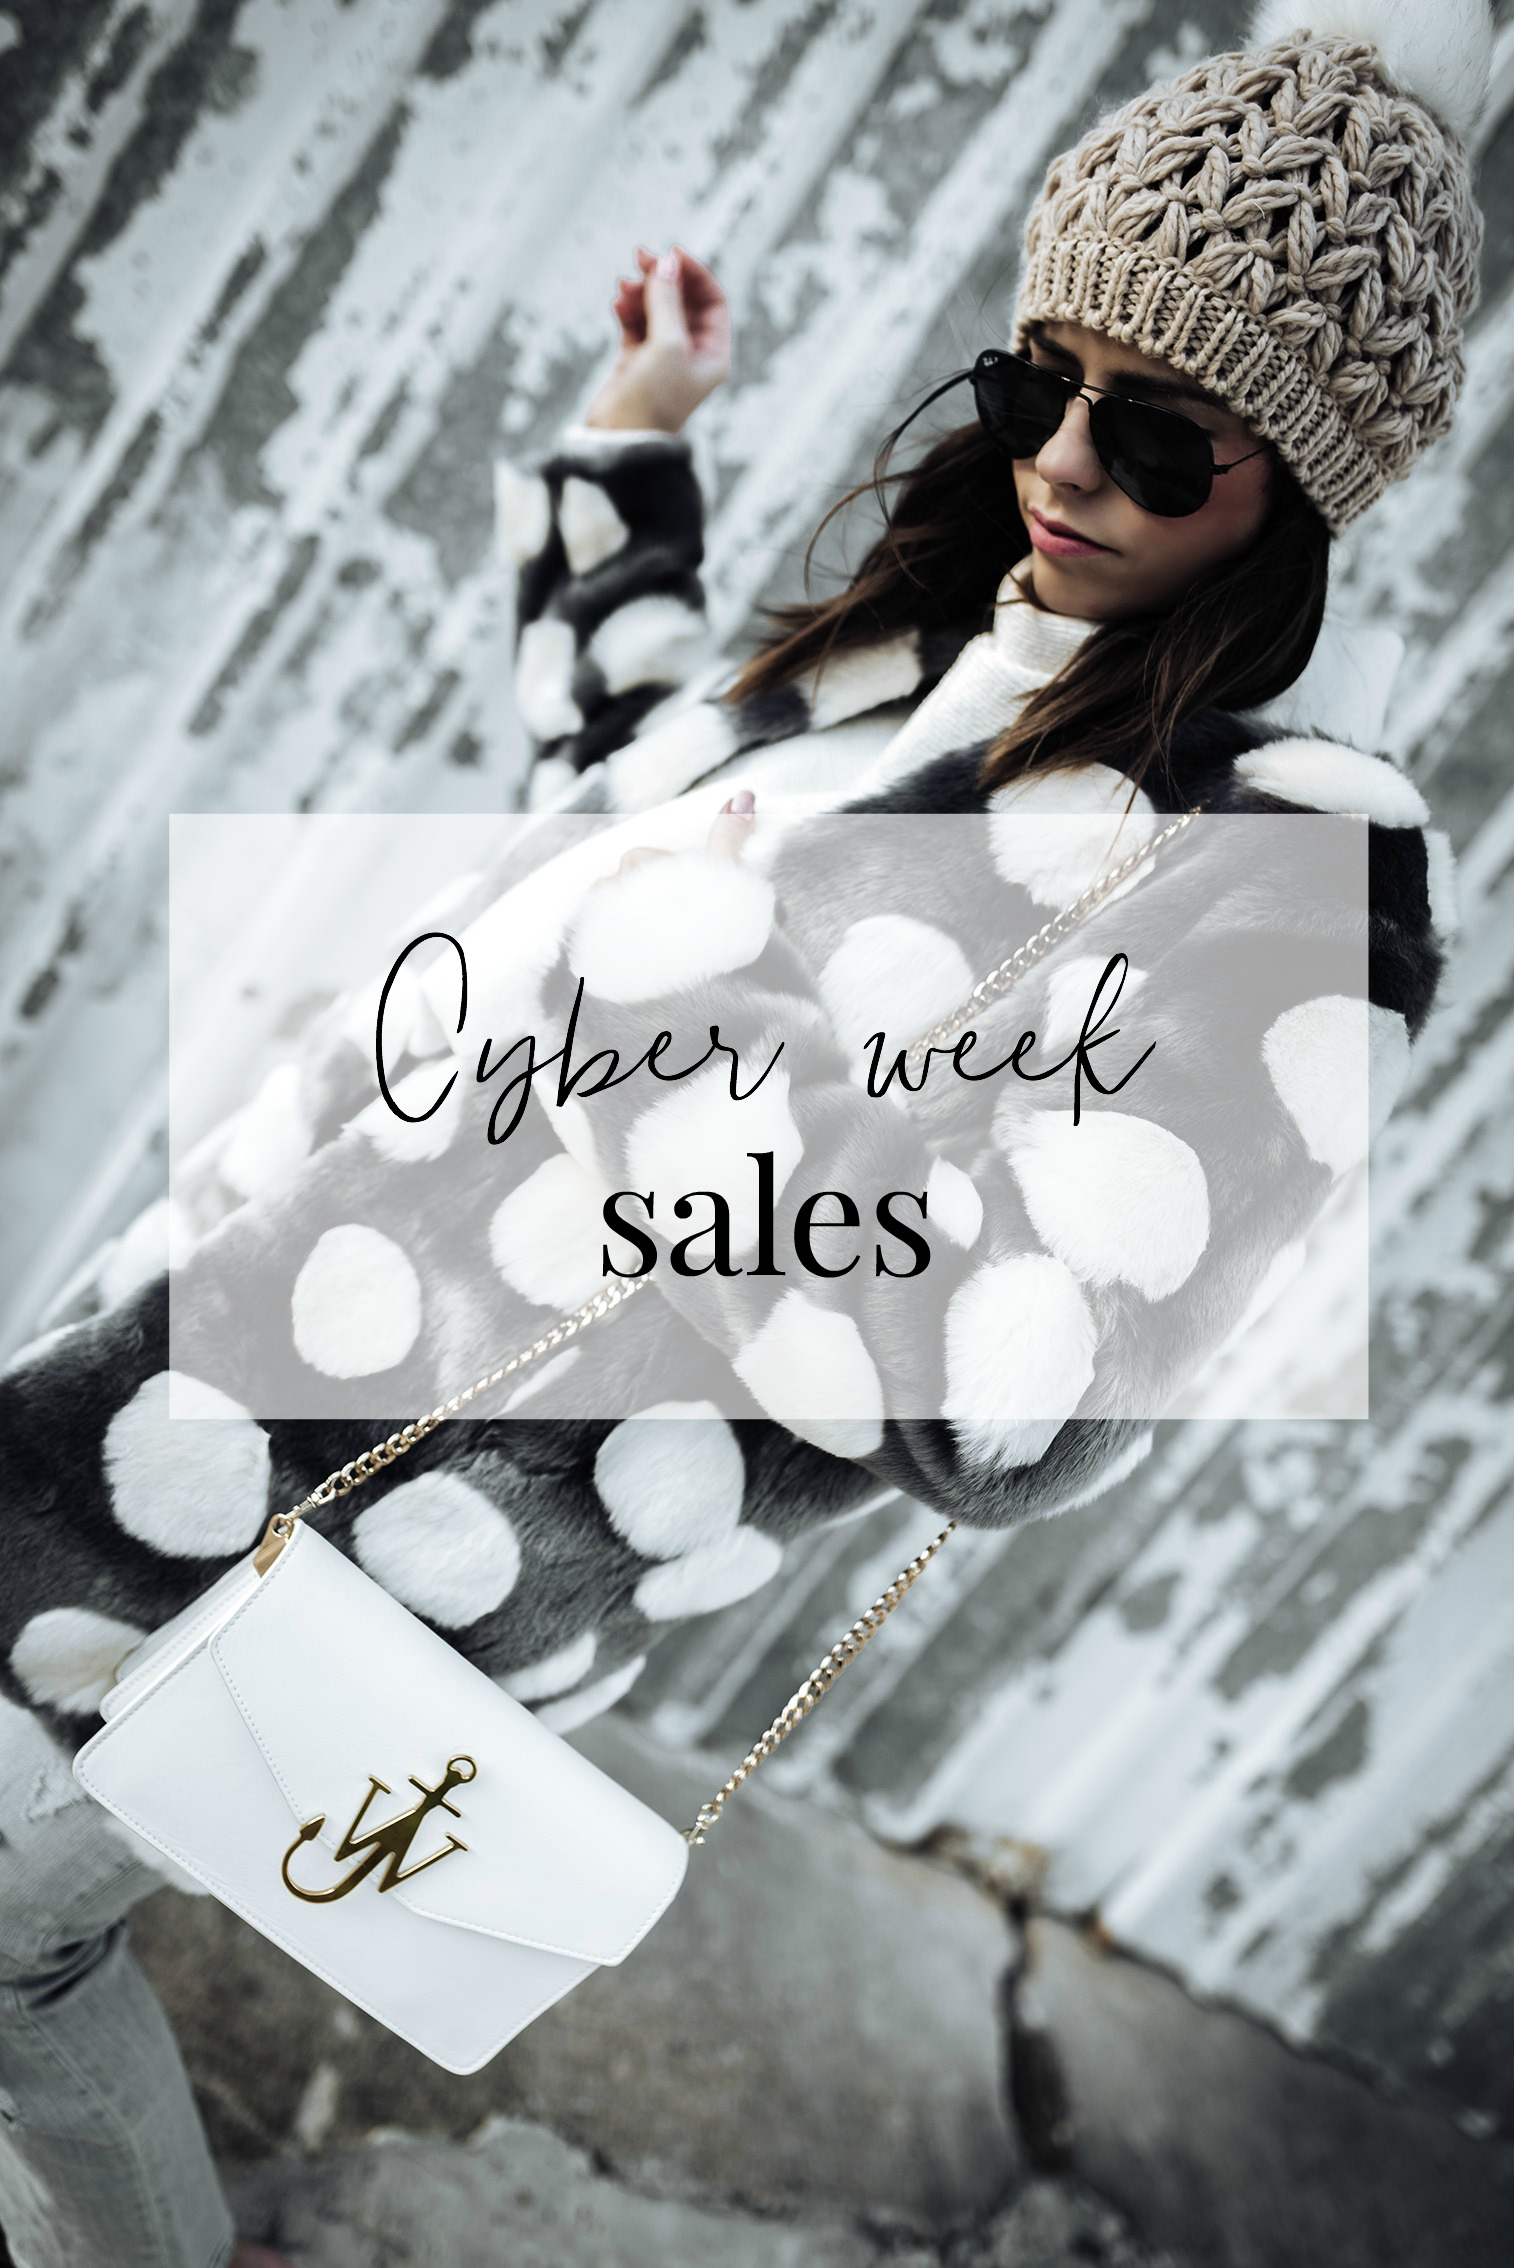 Your guide to all the cyber week sales 2017! Click for the full list! #cyberweeksales #fauxfur